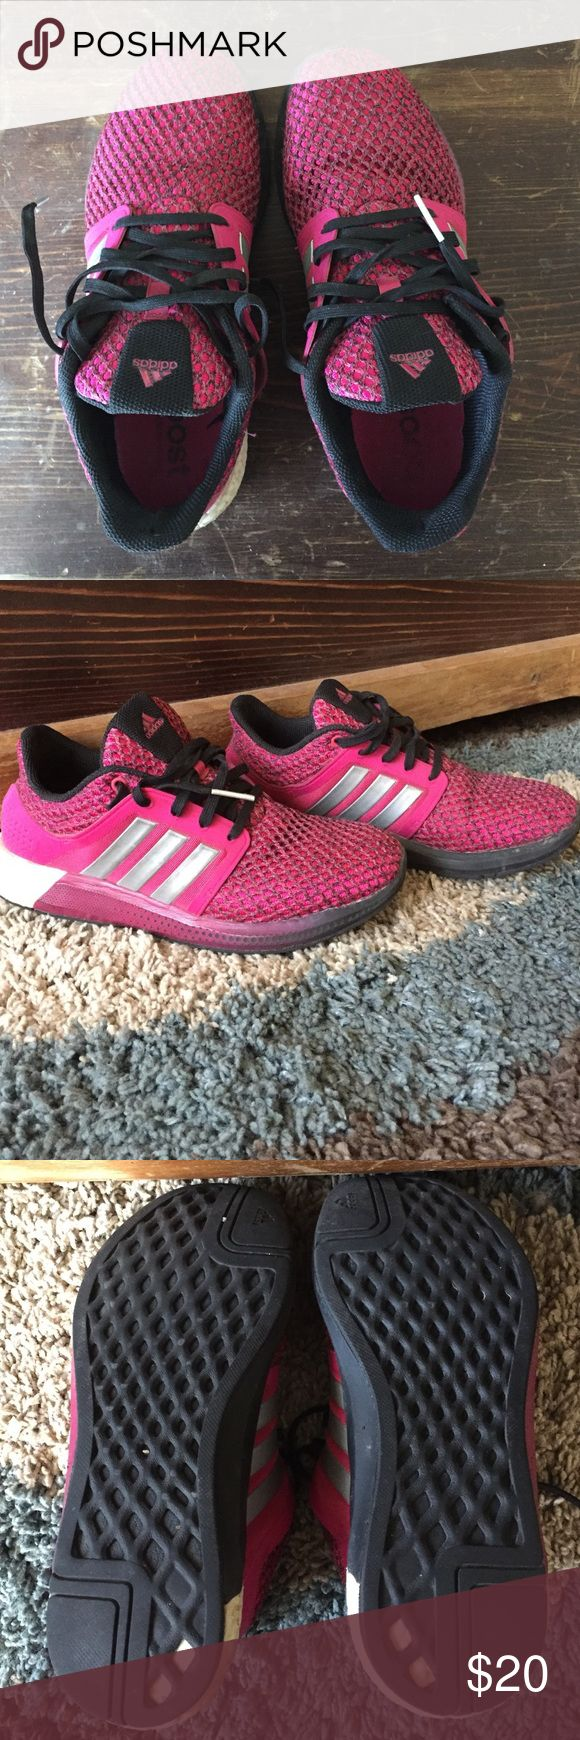 Women's Adidas Boost Shoes Used but still in good shape. I apologize I cannot recall the name of this shoe but it does have to Boost sole and is super comfortable. Adidas Shoes Athletic Shoes